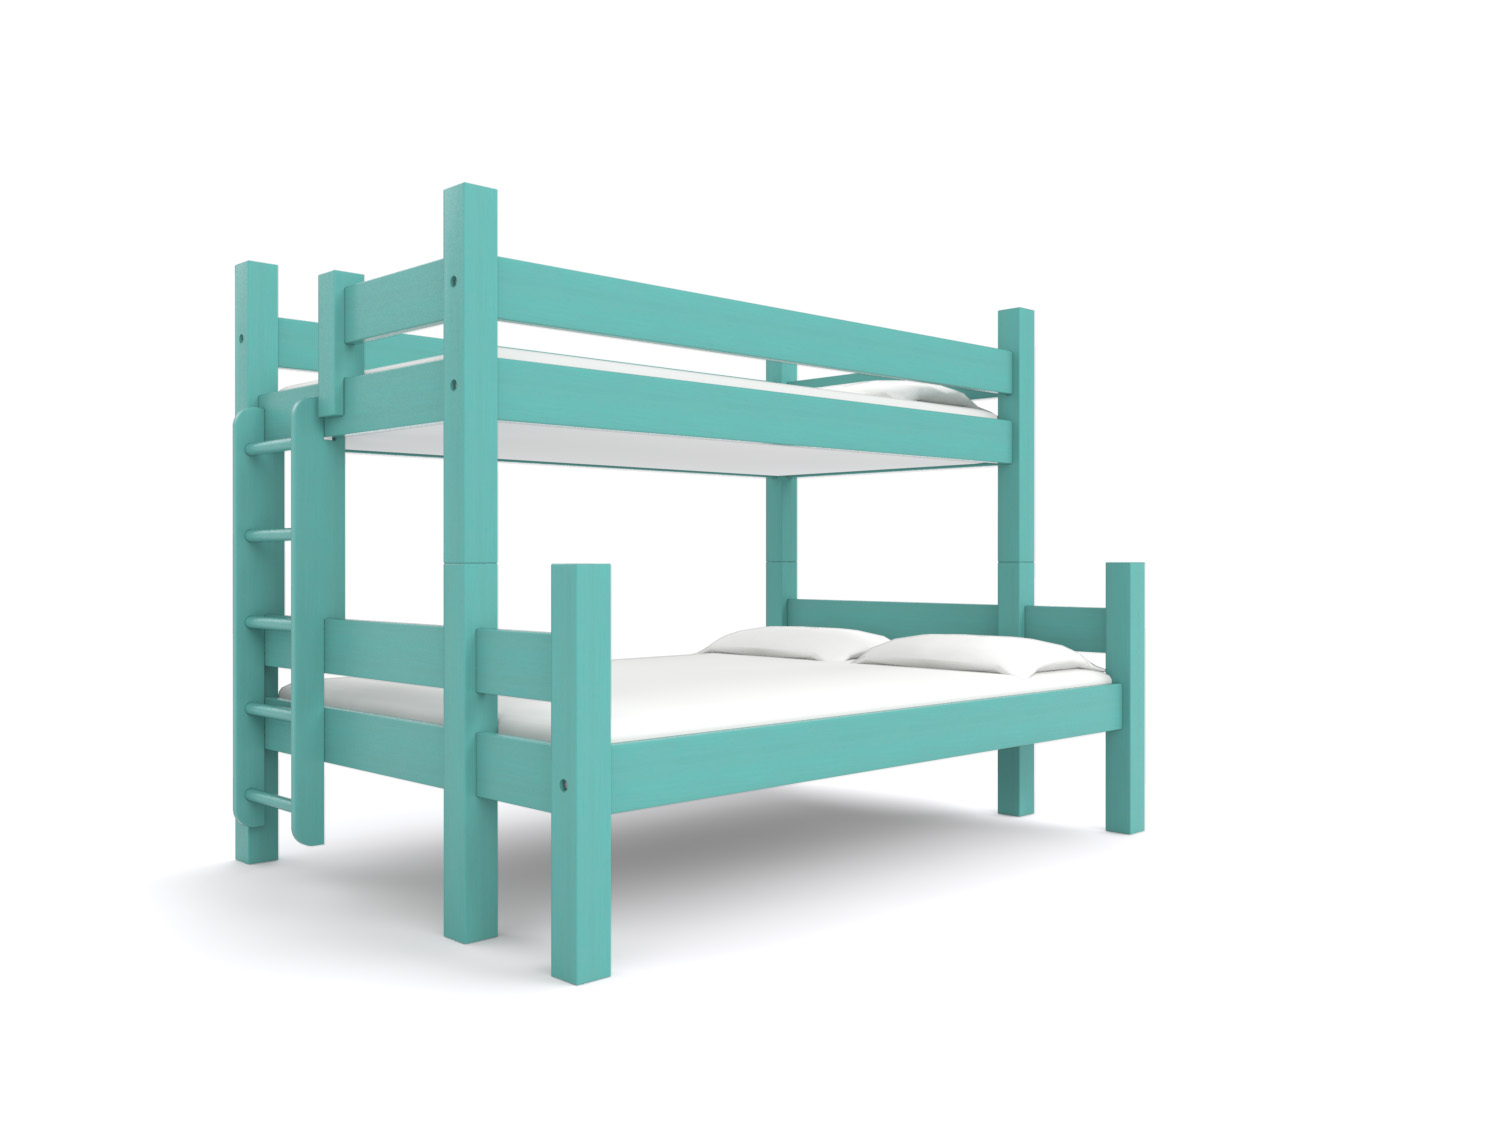 """ BAR HARBOR "" Twin-over-Full -  A versatile bunk bed for guests and children. Holds one 75"" long Twin bed and one 75"" long Full bed. Options: Trundle or storage drawers. Made to hold adults.  Starting at $2695:   Click for Custom Quote"